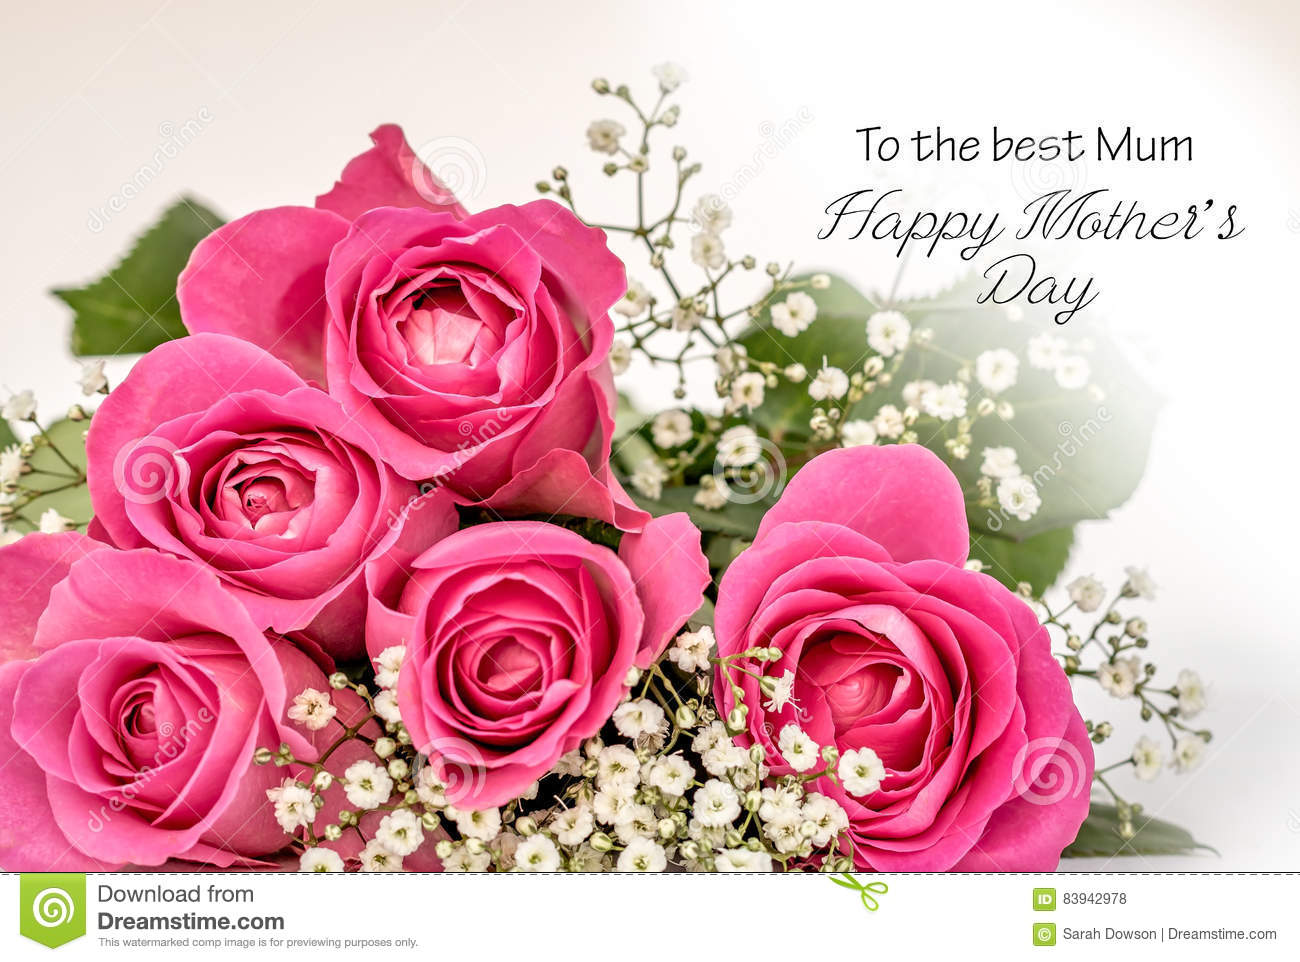 Sensational Quotes Wallpapers Roses Mothers Day Card Stock Photo Image Of Floral